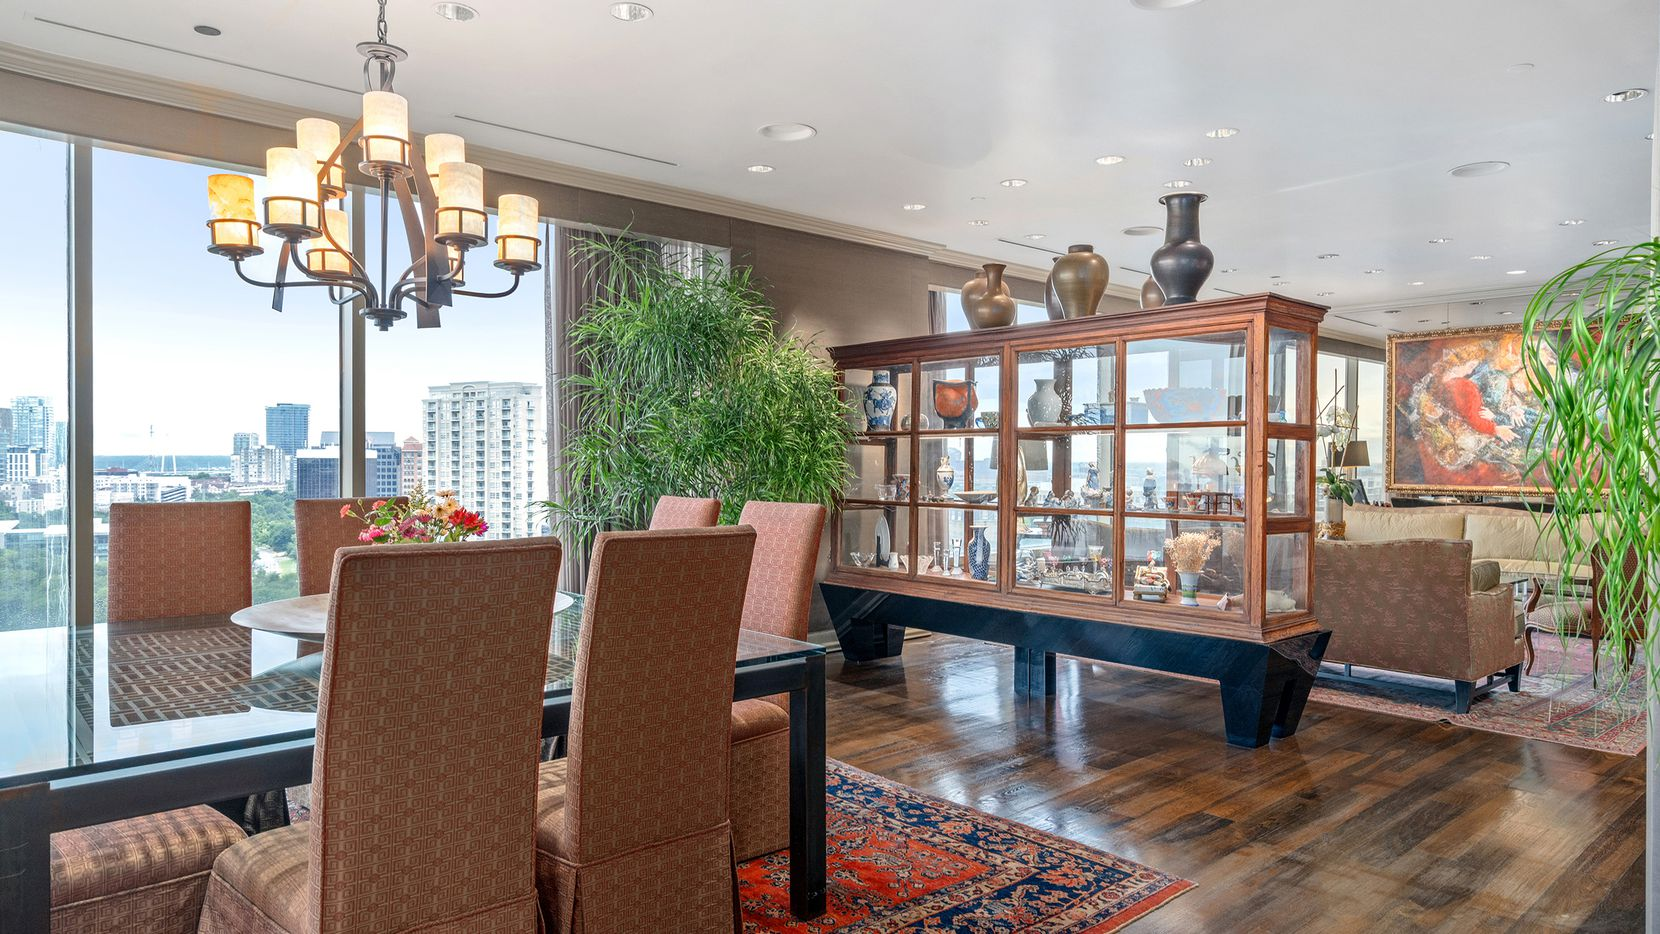 The renovated residence at 3510 Turtle Creek Blvd. unit 12F at Claridge Condos provides views of Turtle Creek Park and the skyline.